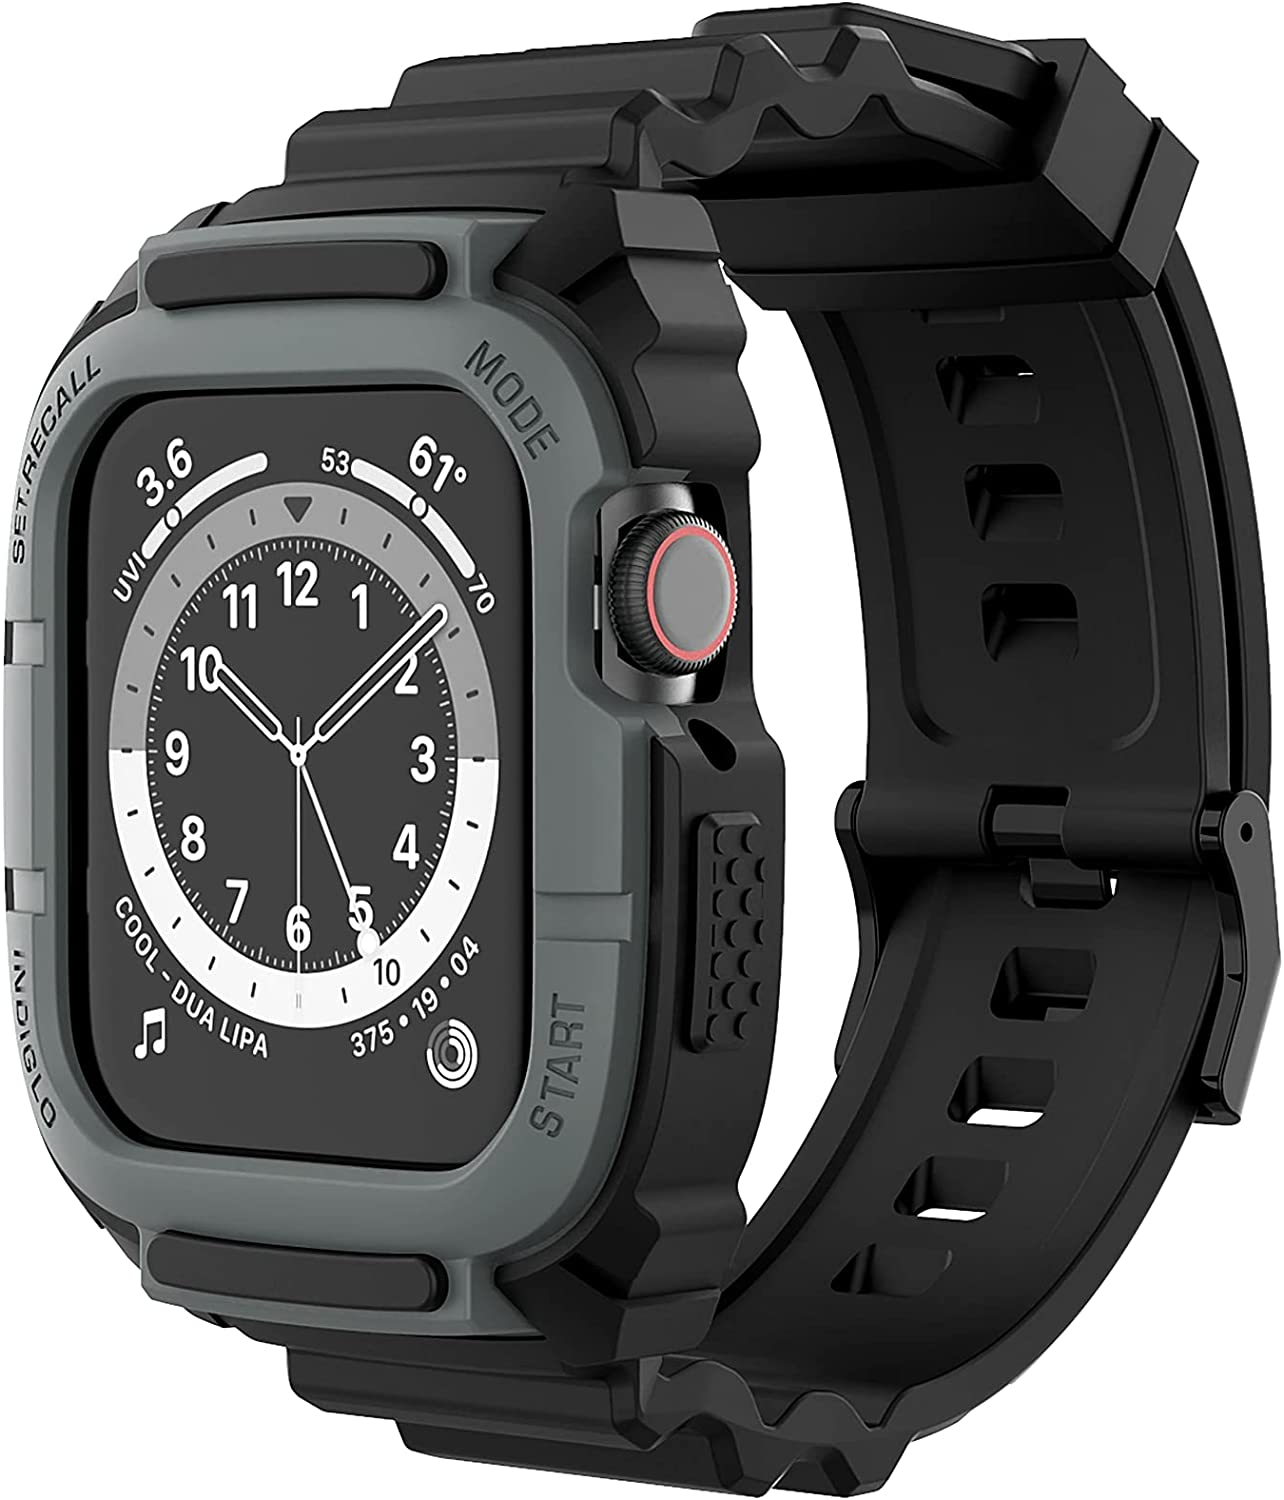 Compatible for Apple Watch Band 44mm 42mm with Bumper Case, Loxoto Rugged Protective Drop Shock Resistant Case with TPU Band Strap Fit for iWatch 6/SE/5/4/3 Men Women Sport Military Style